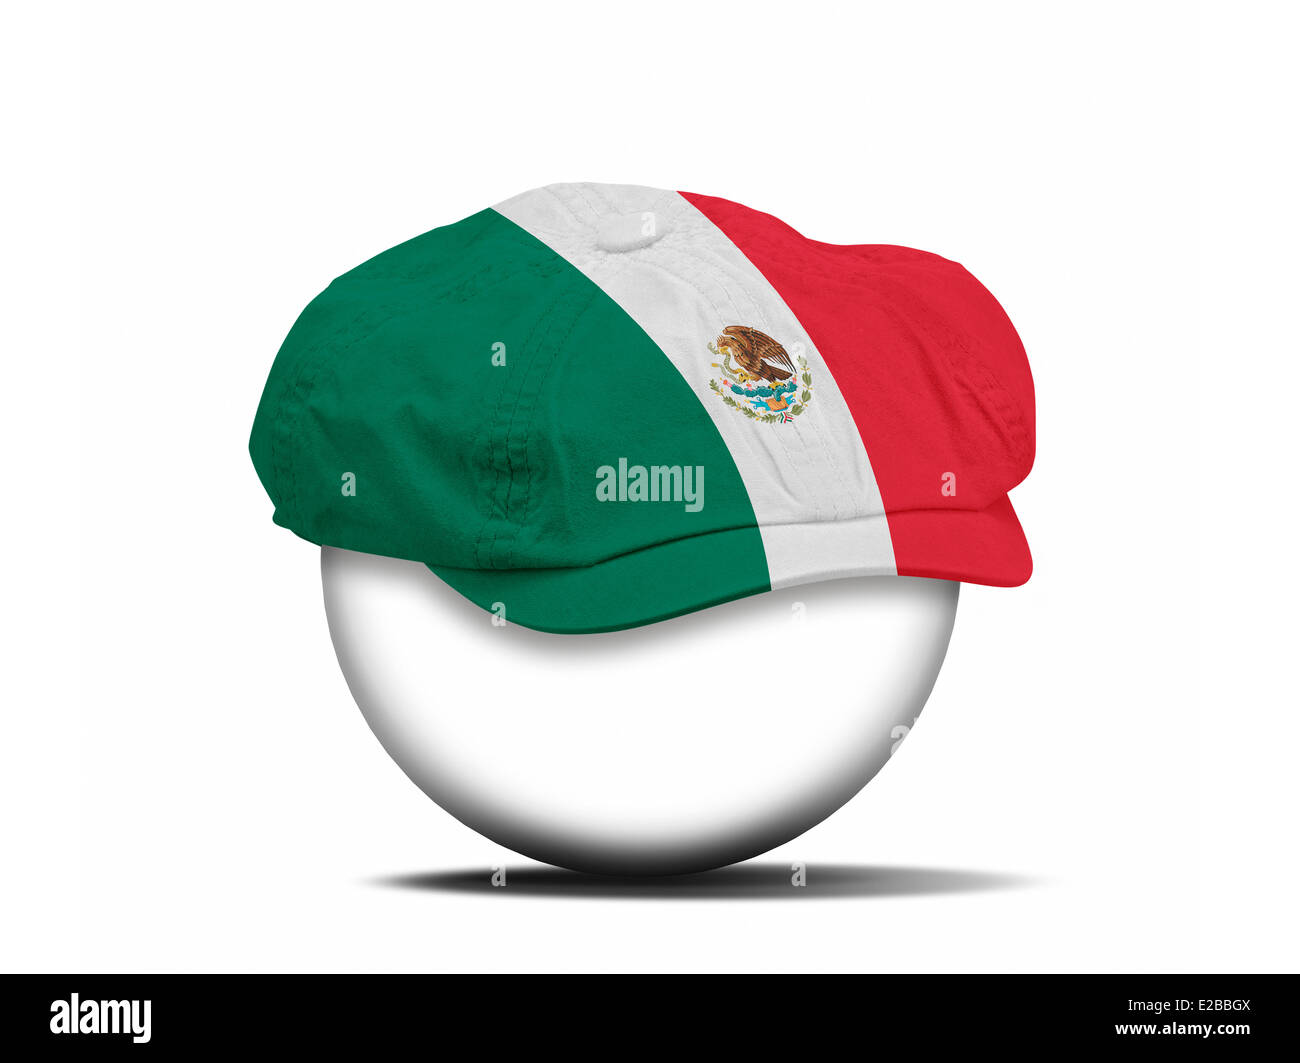 fashion hat on white with the flag of Mexico - clipping path for the hat - Stock Image